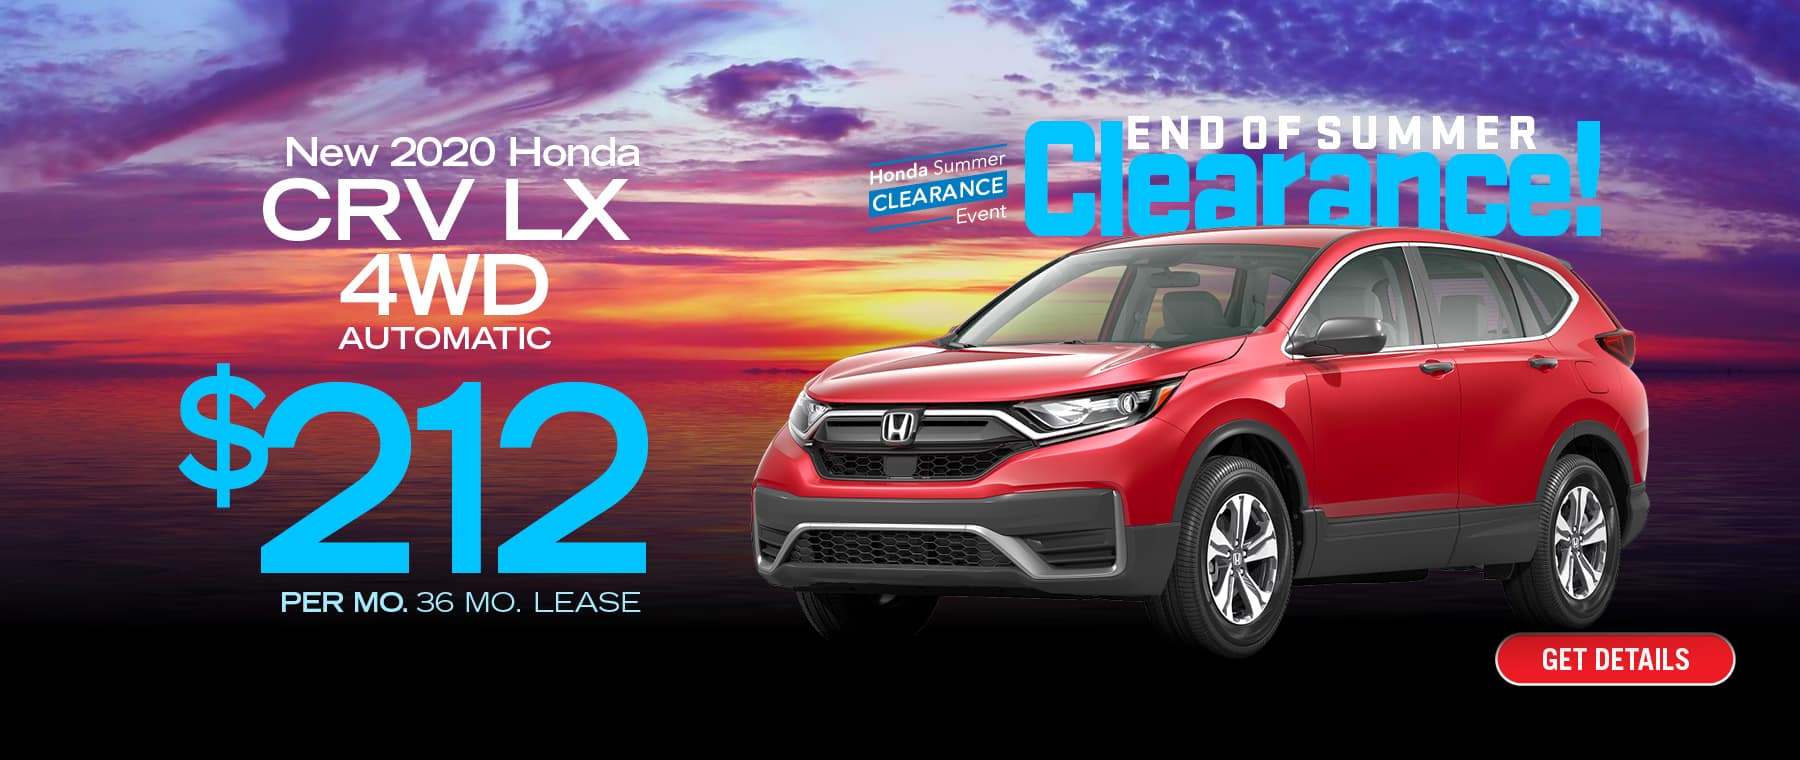 Lease a CR-V for $212